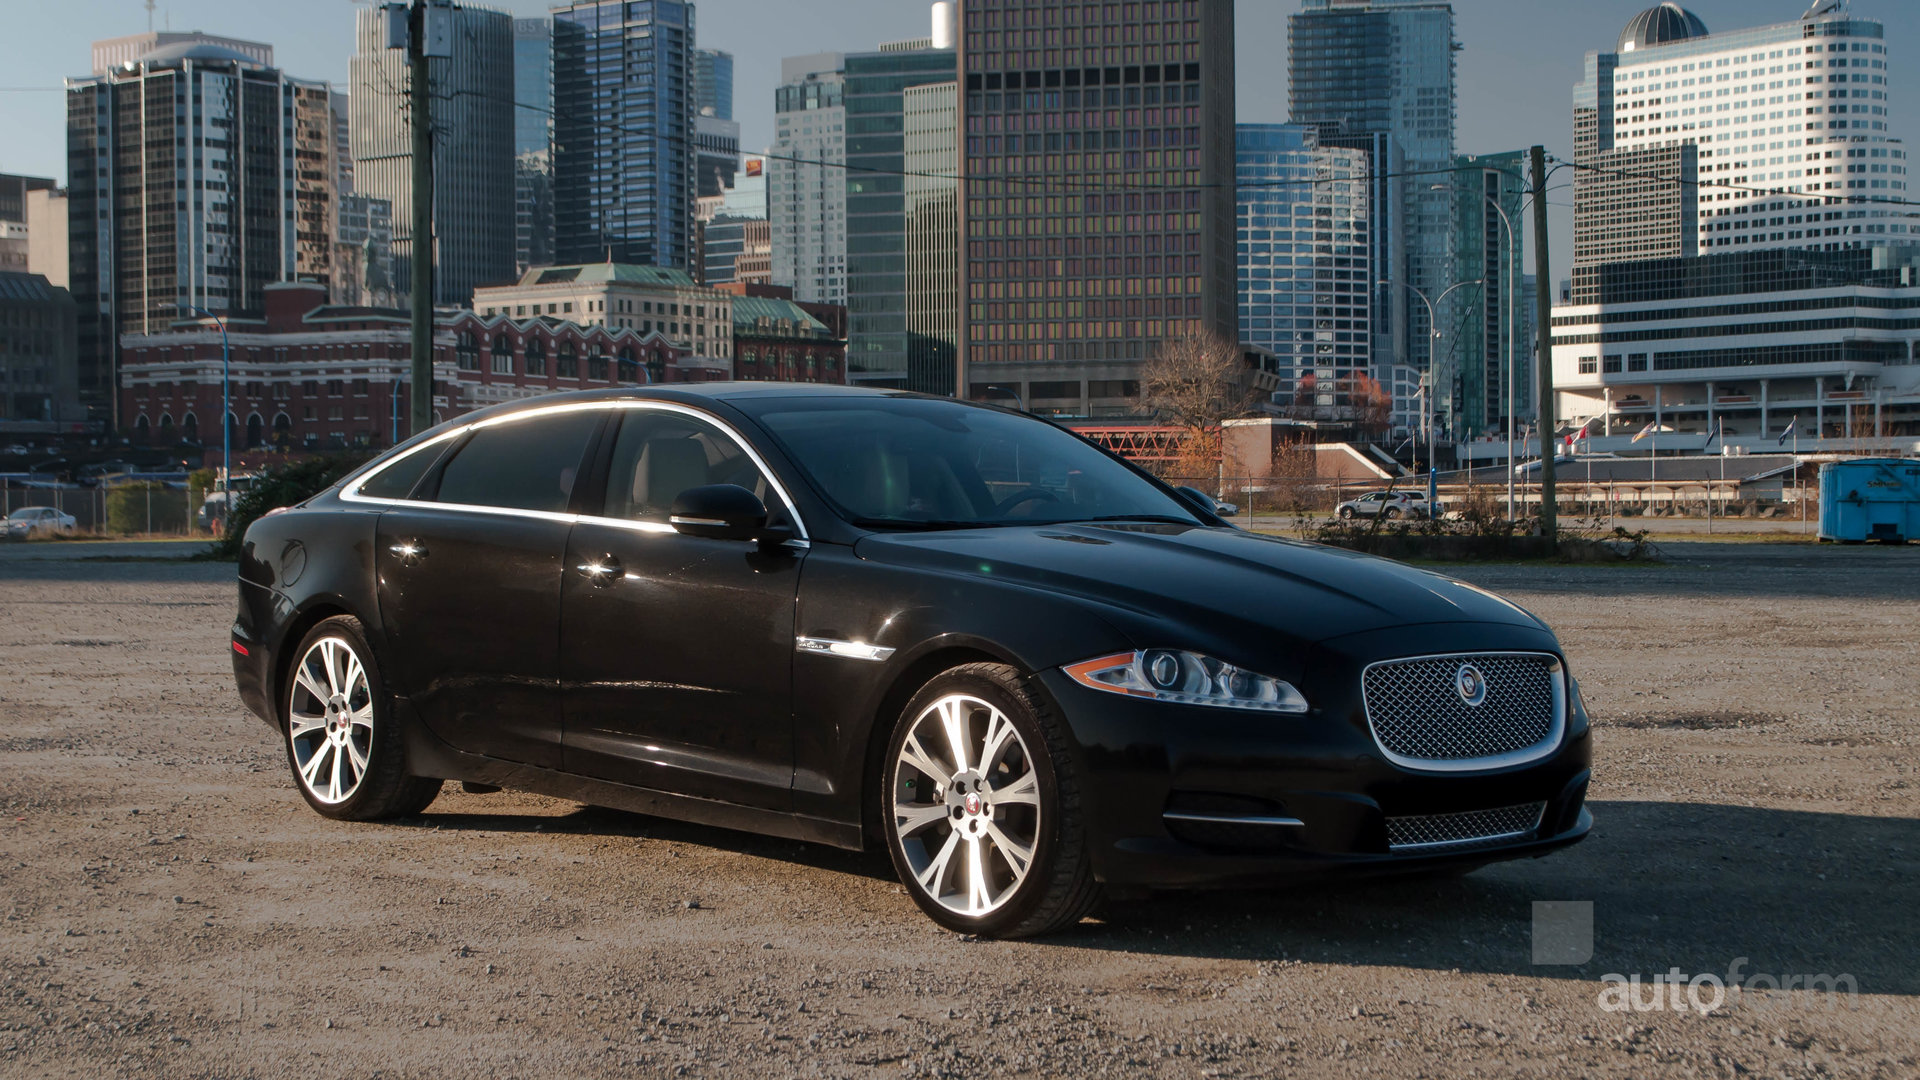 character sportive sleek l tag a and xj archives com autoandroad xjl style impressive underlining has jaguar its